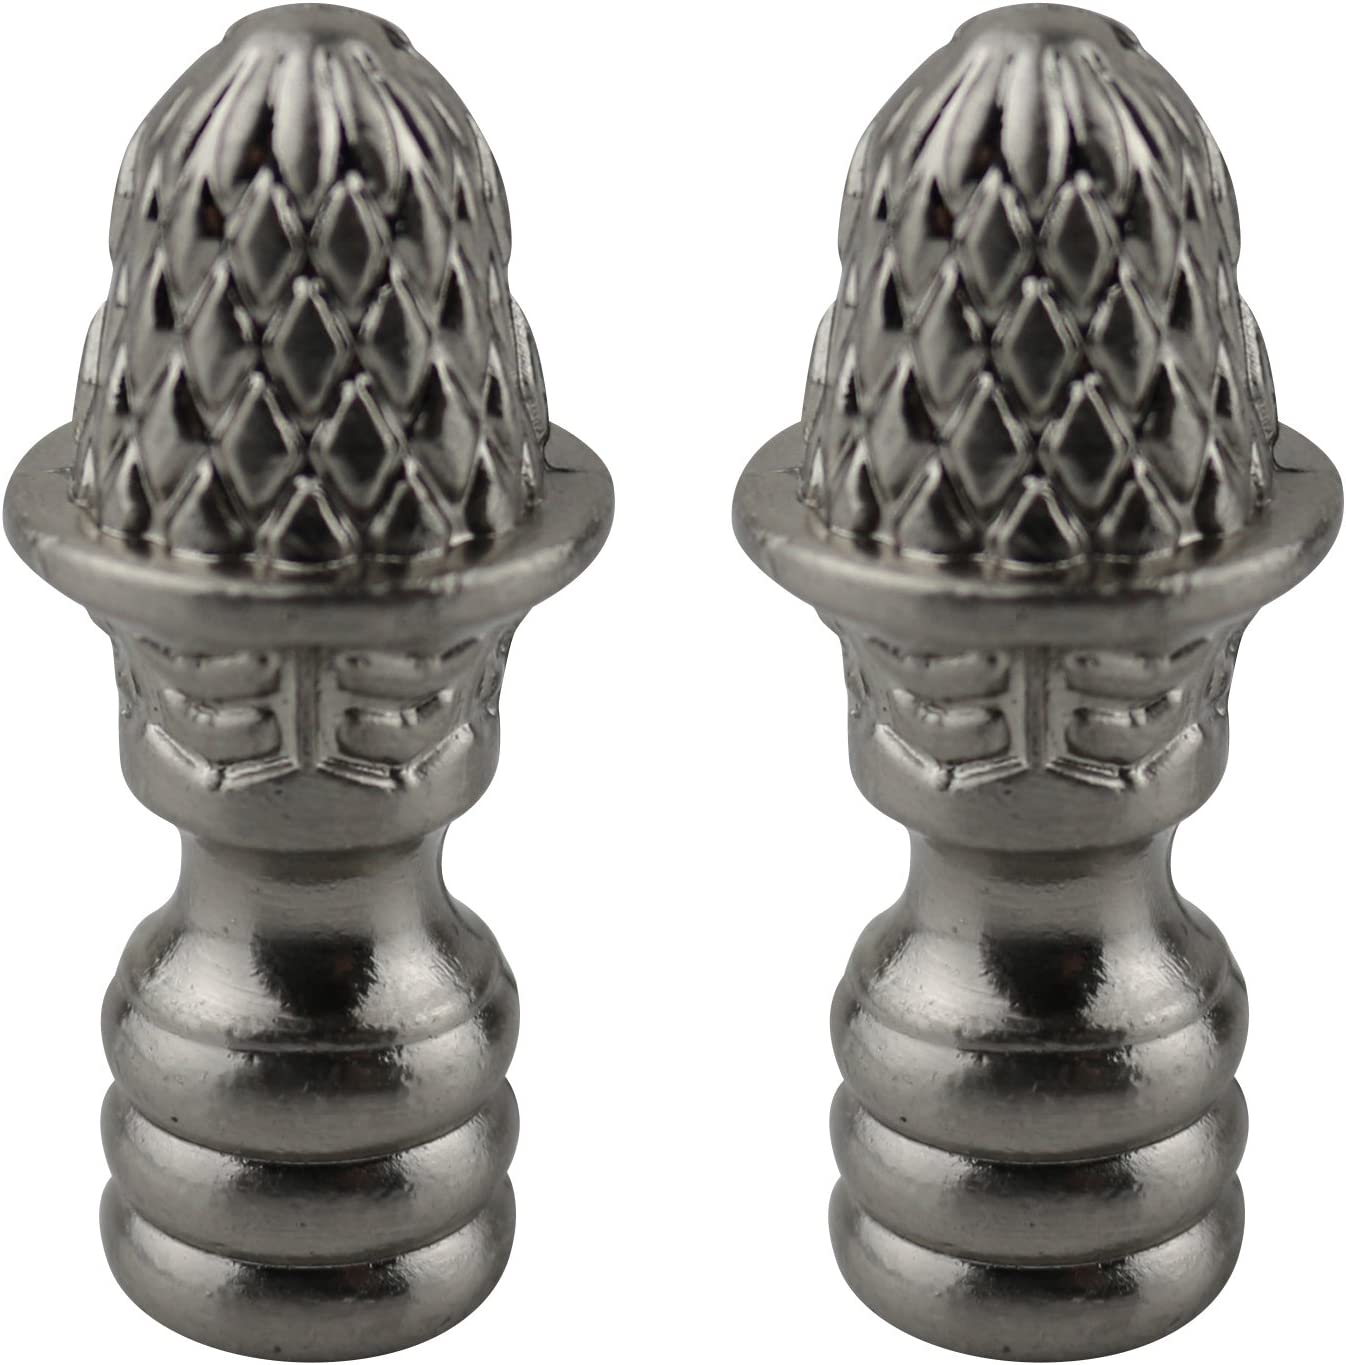 Antique Brass Urbanest Set of 2 Rothwell Lamp Finial 1 5//16-inch Tall